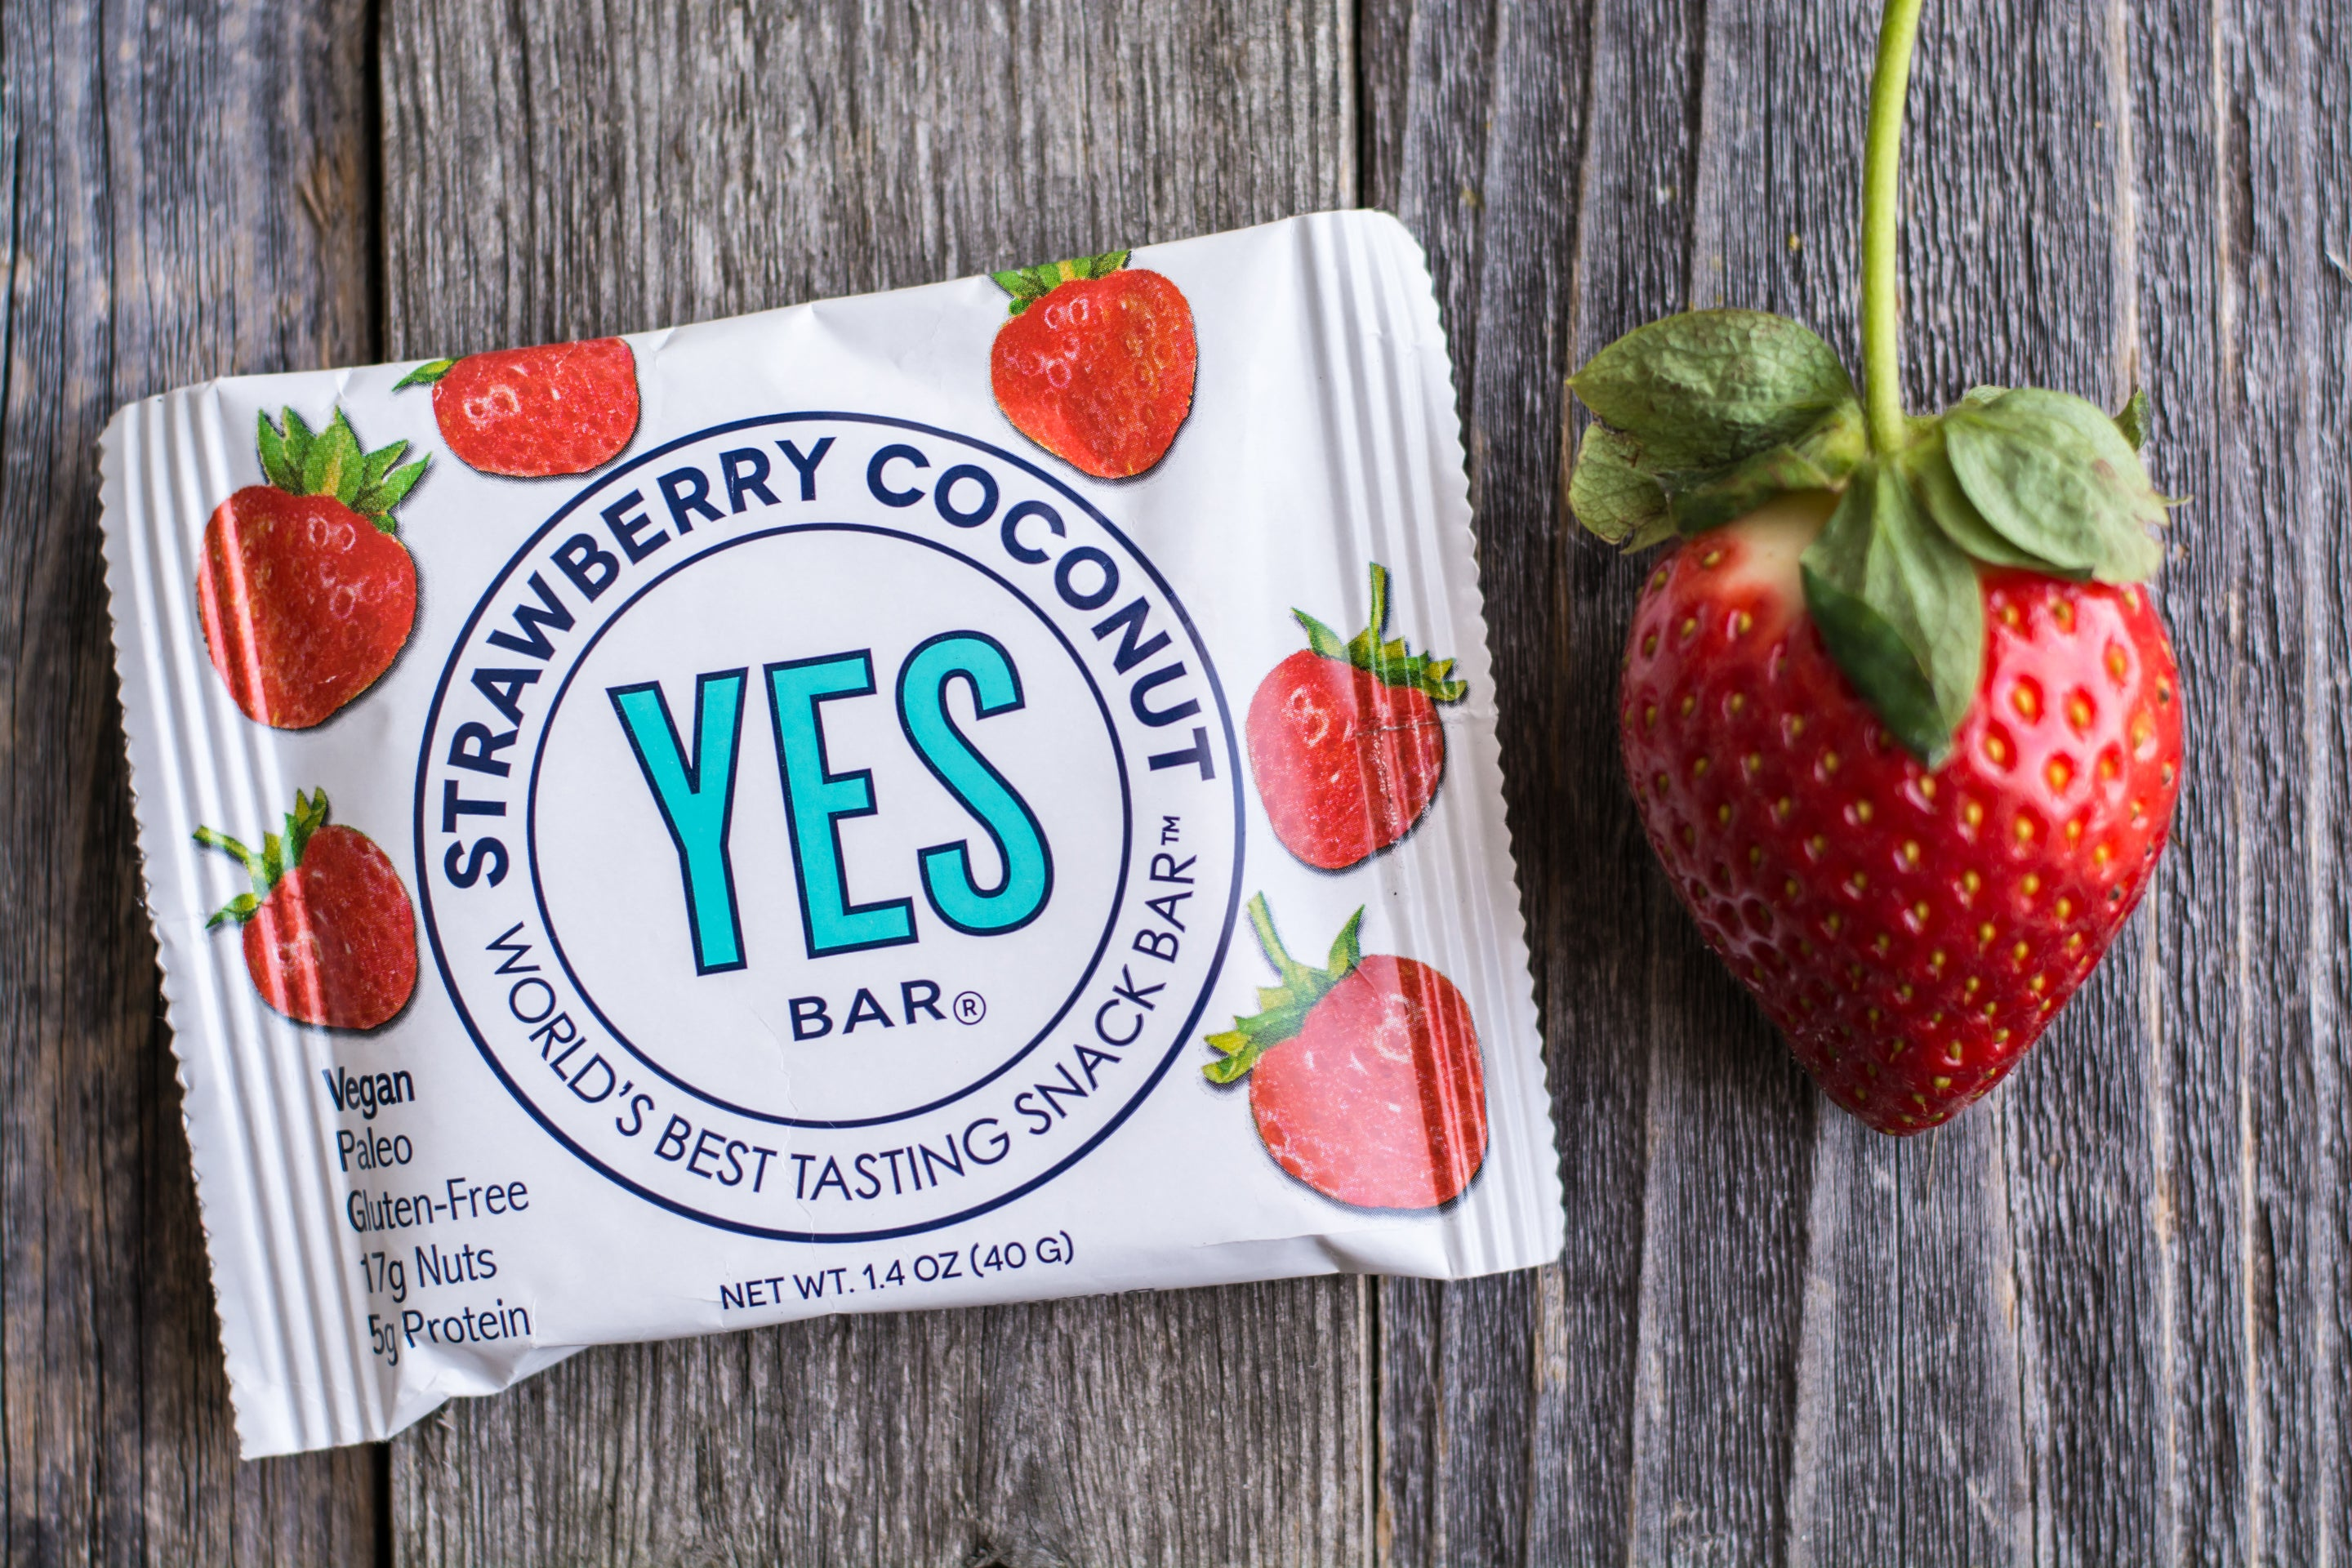 Strawberry Coconut Bar